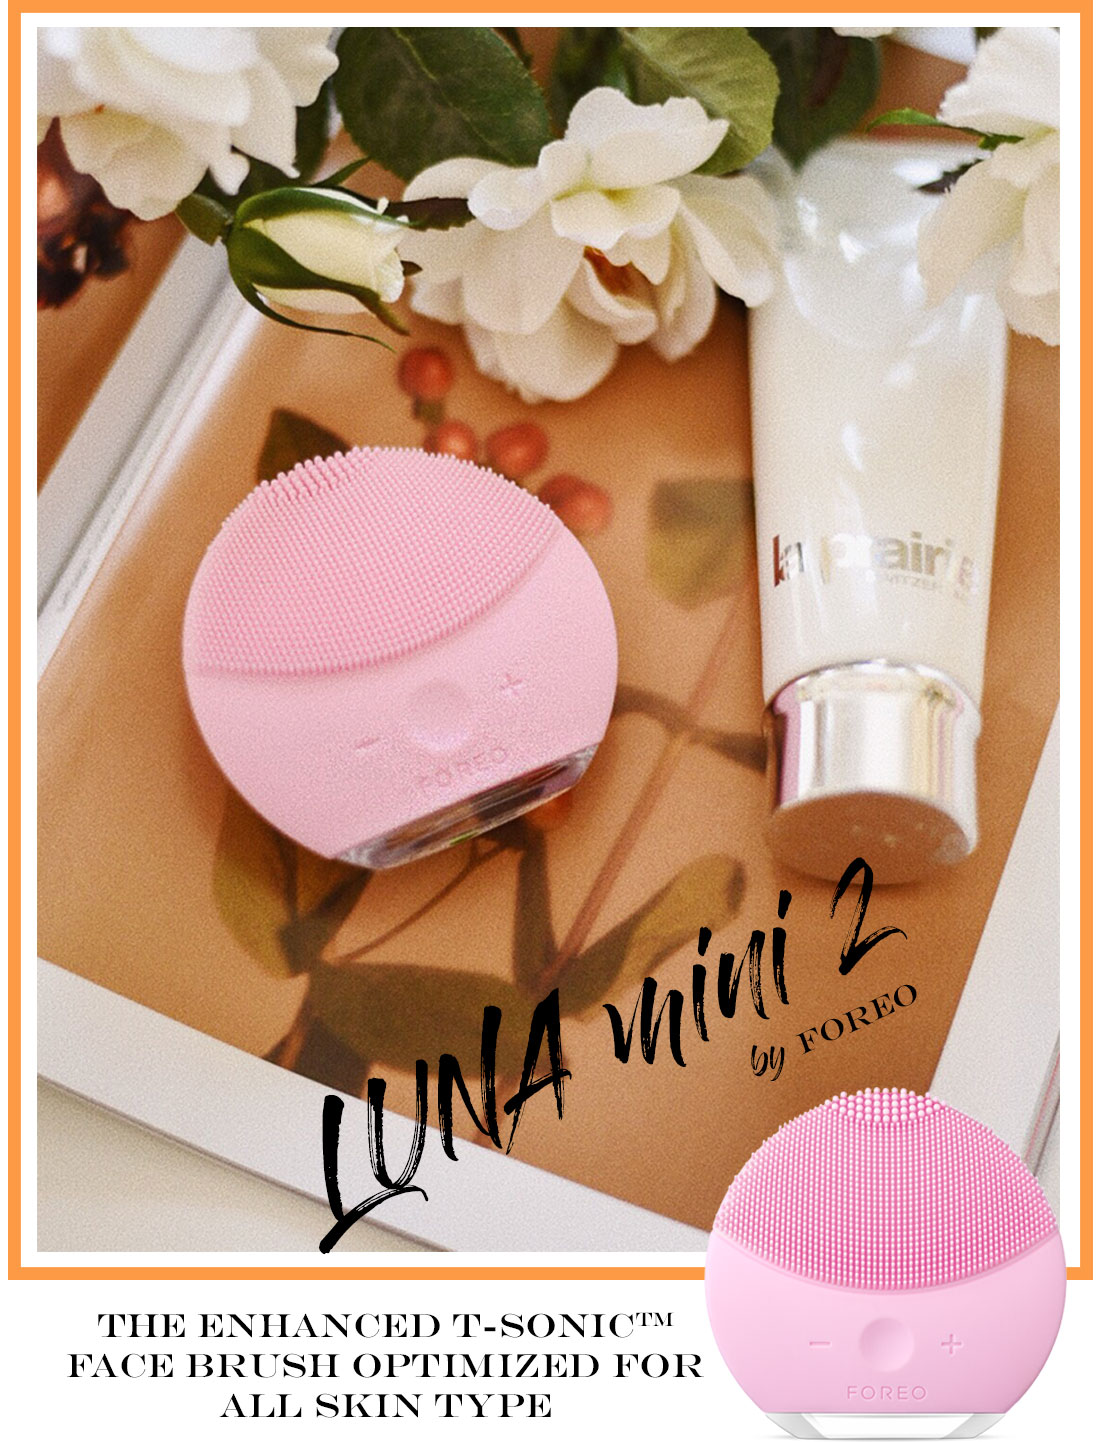 Luna Mini 2 by FOREO Review